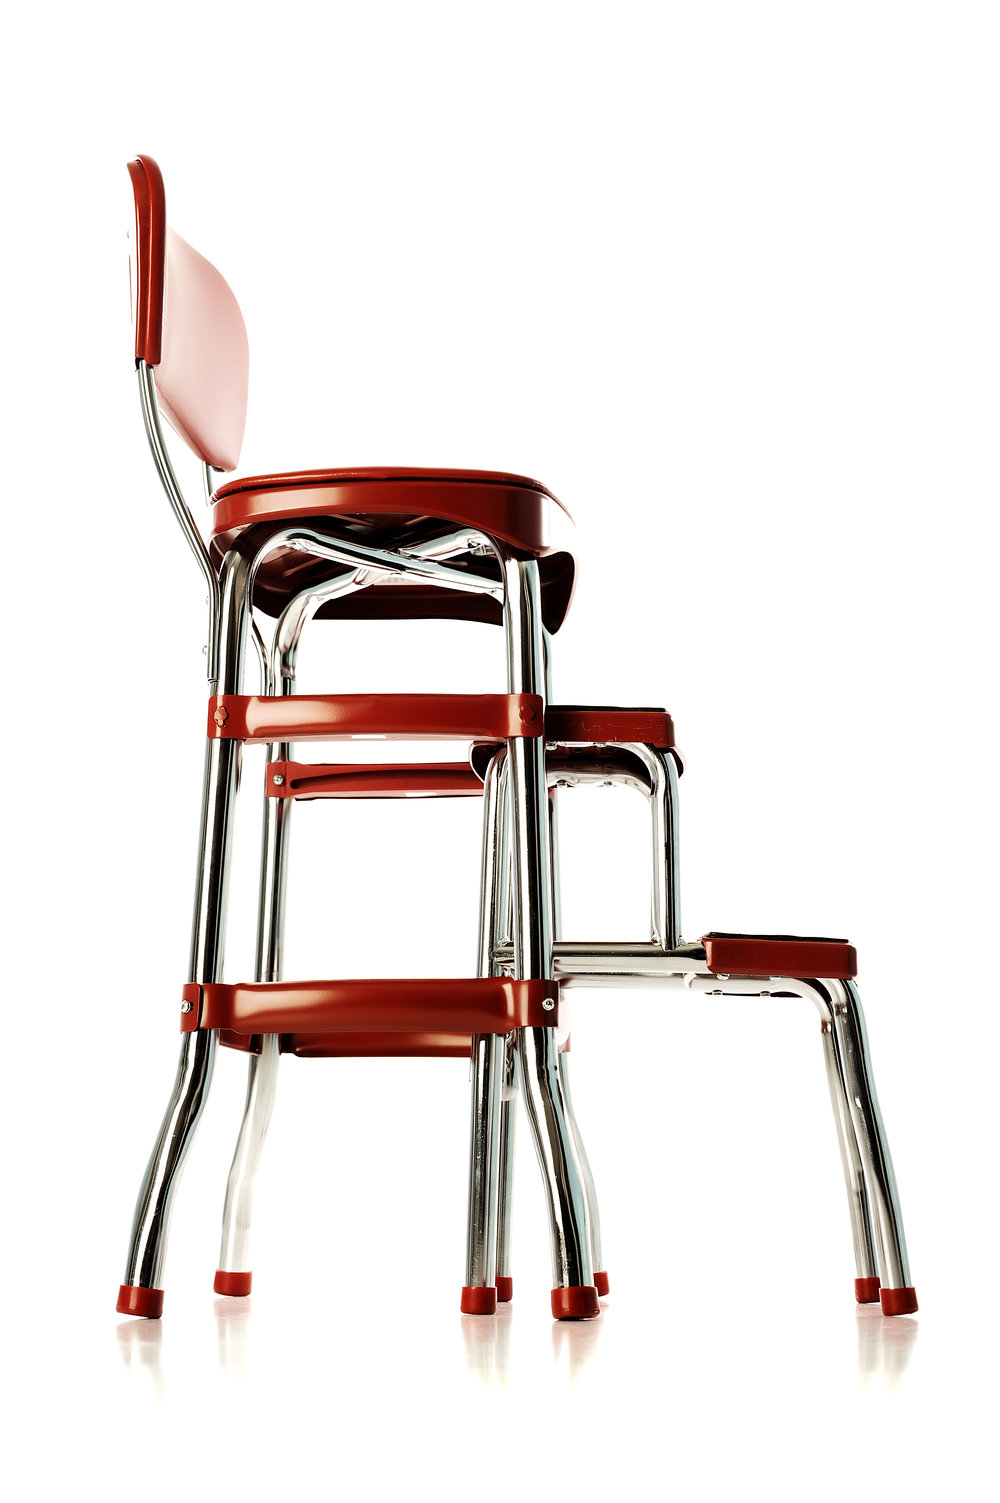 Cosco_Retro Stool2.JPG